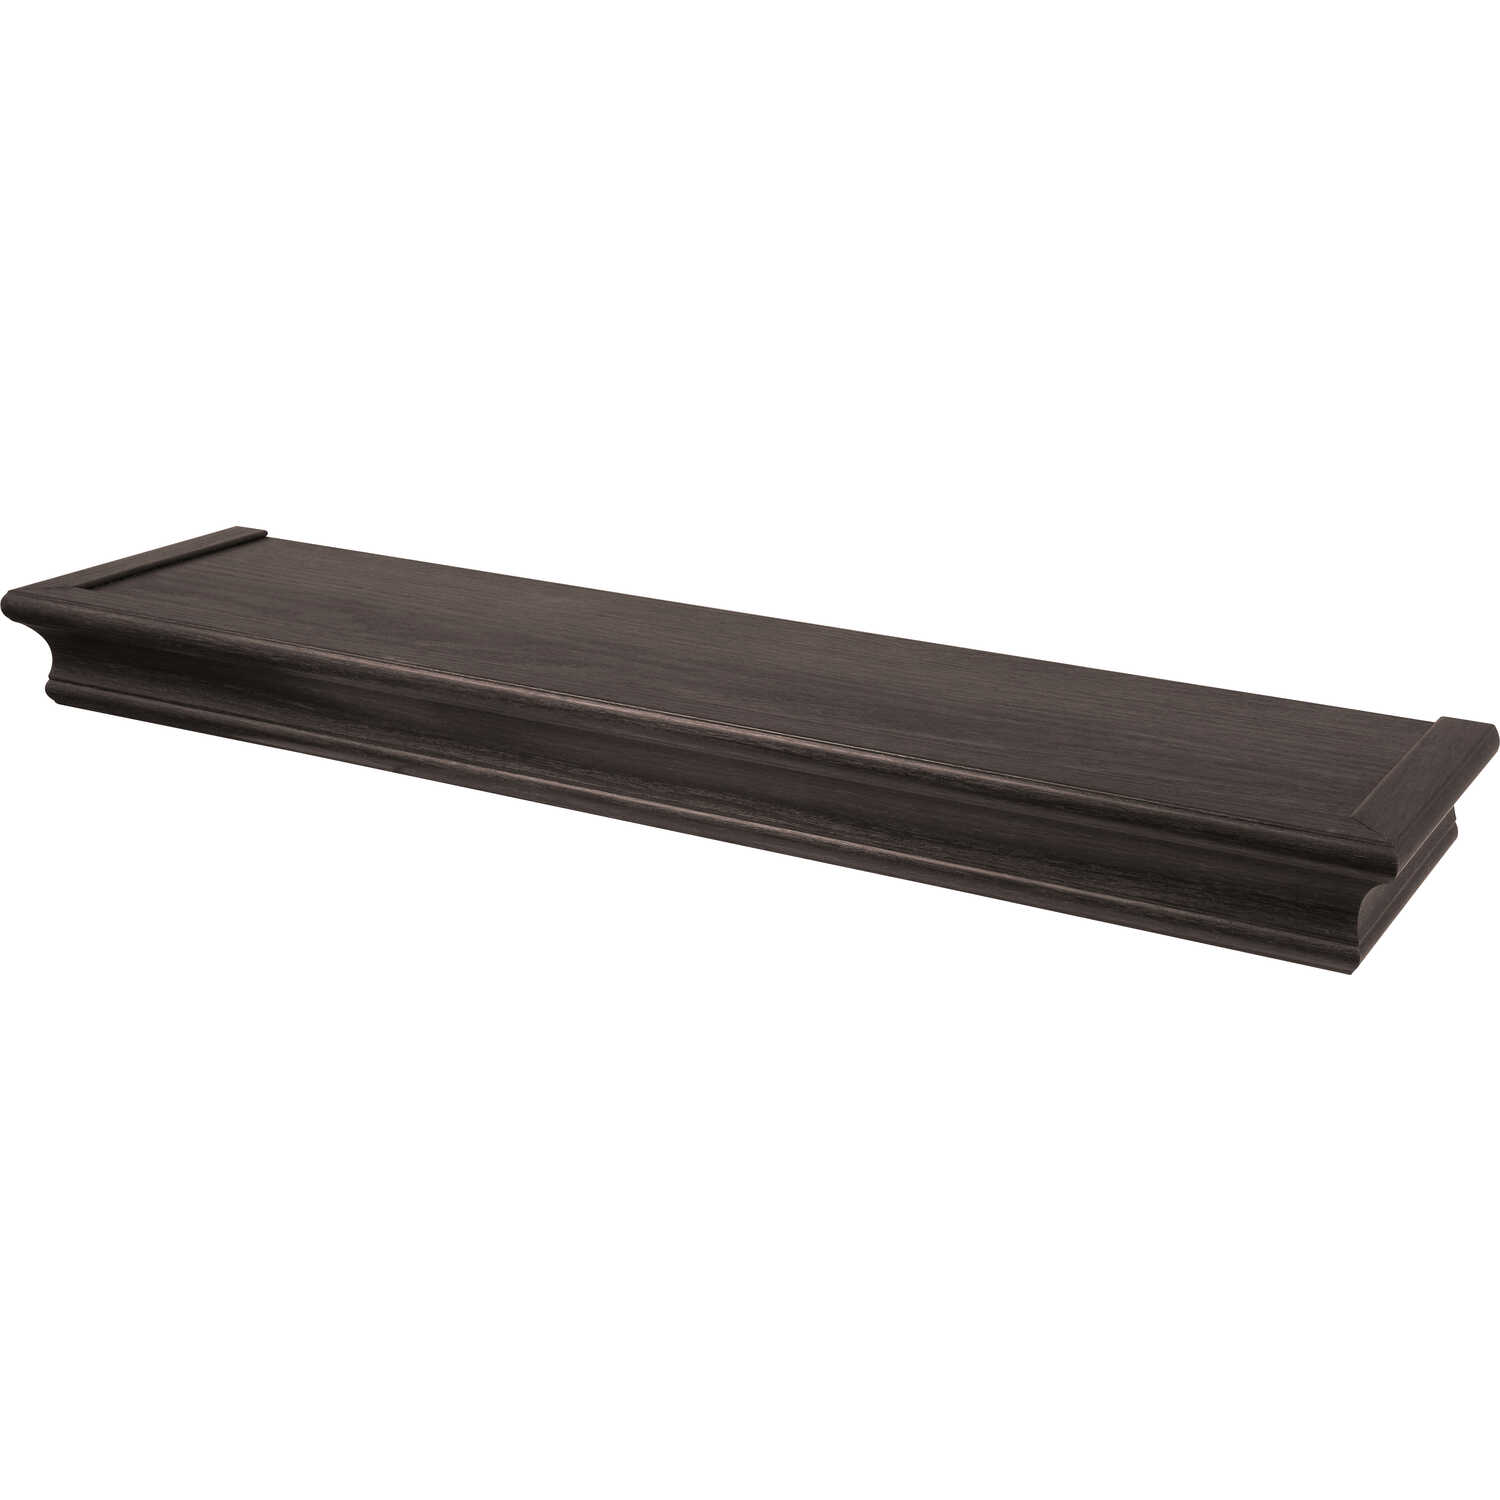 HIGH AND MIGHTY  2.5 in. H x 24 in. W x 6 in. D Espresso  Plastic  Shelf